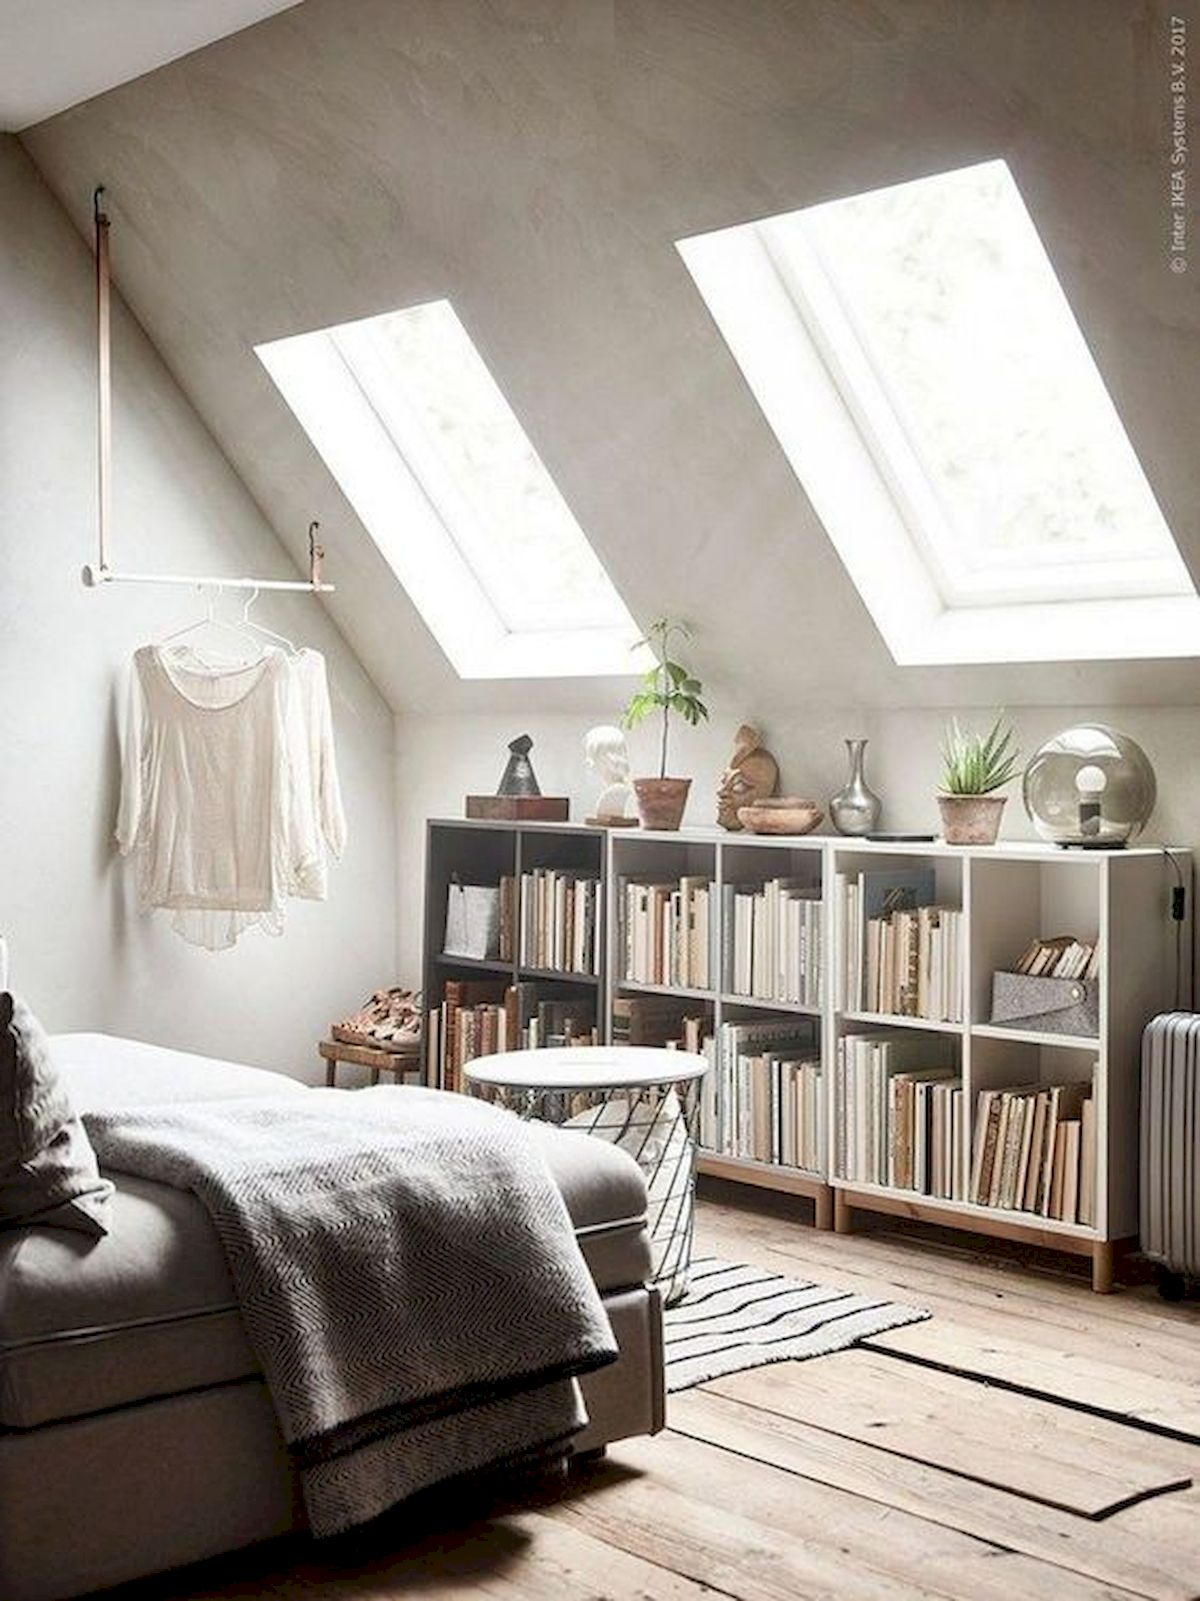 40 Awesome Attic Bedroom Design and Decorating Ideas (23)